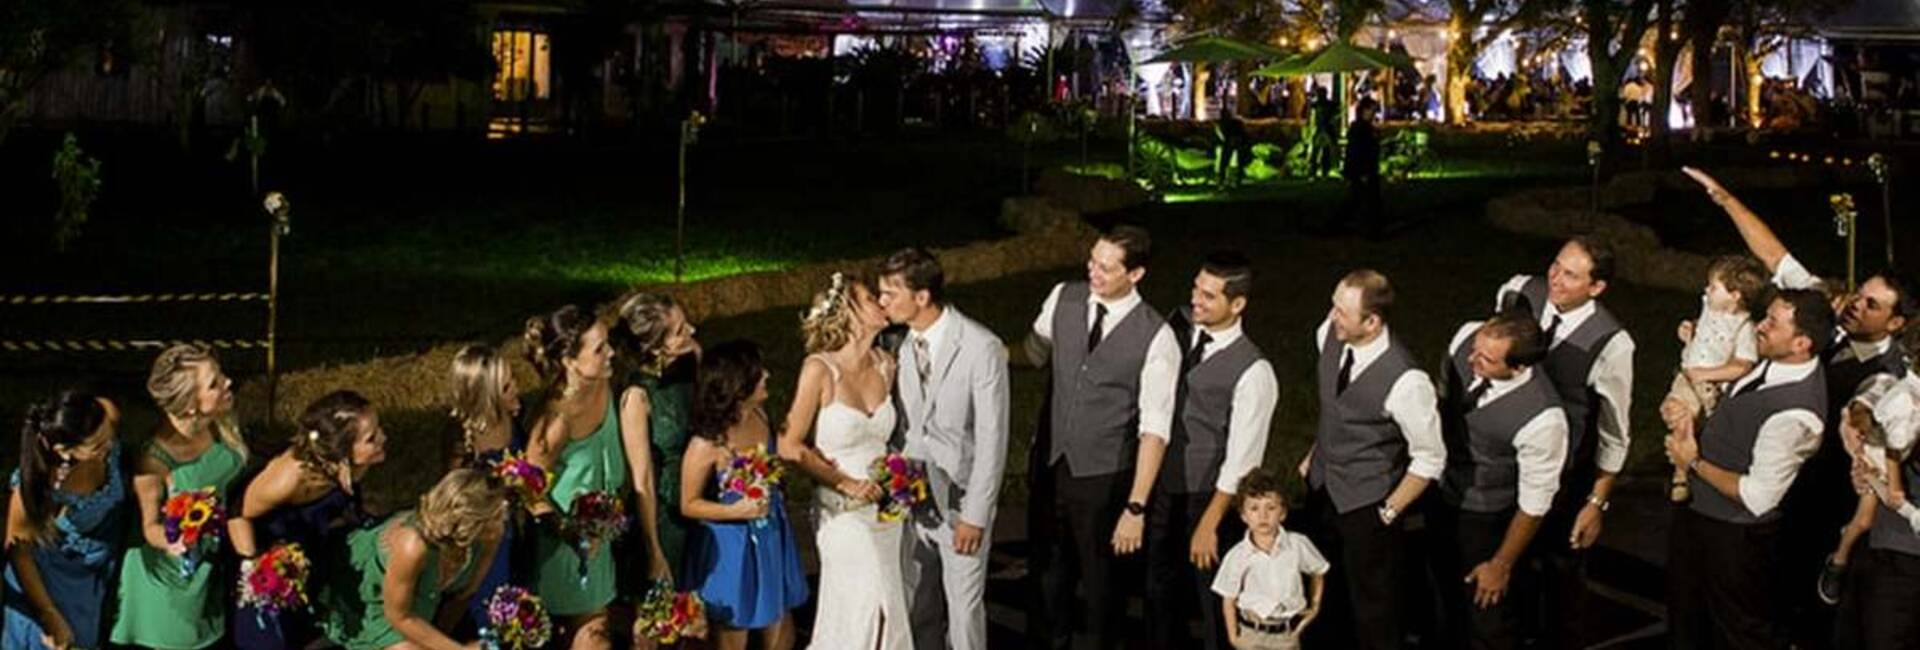 Wedding, Casamento, de Bibi e Germano